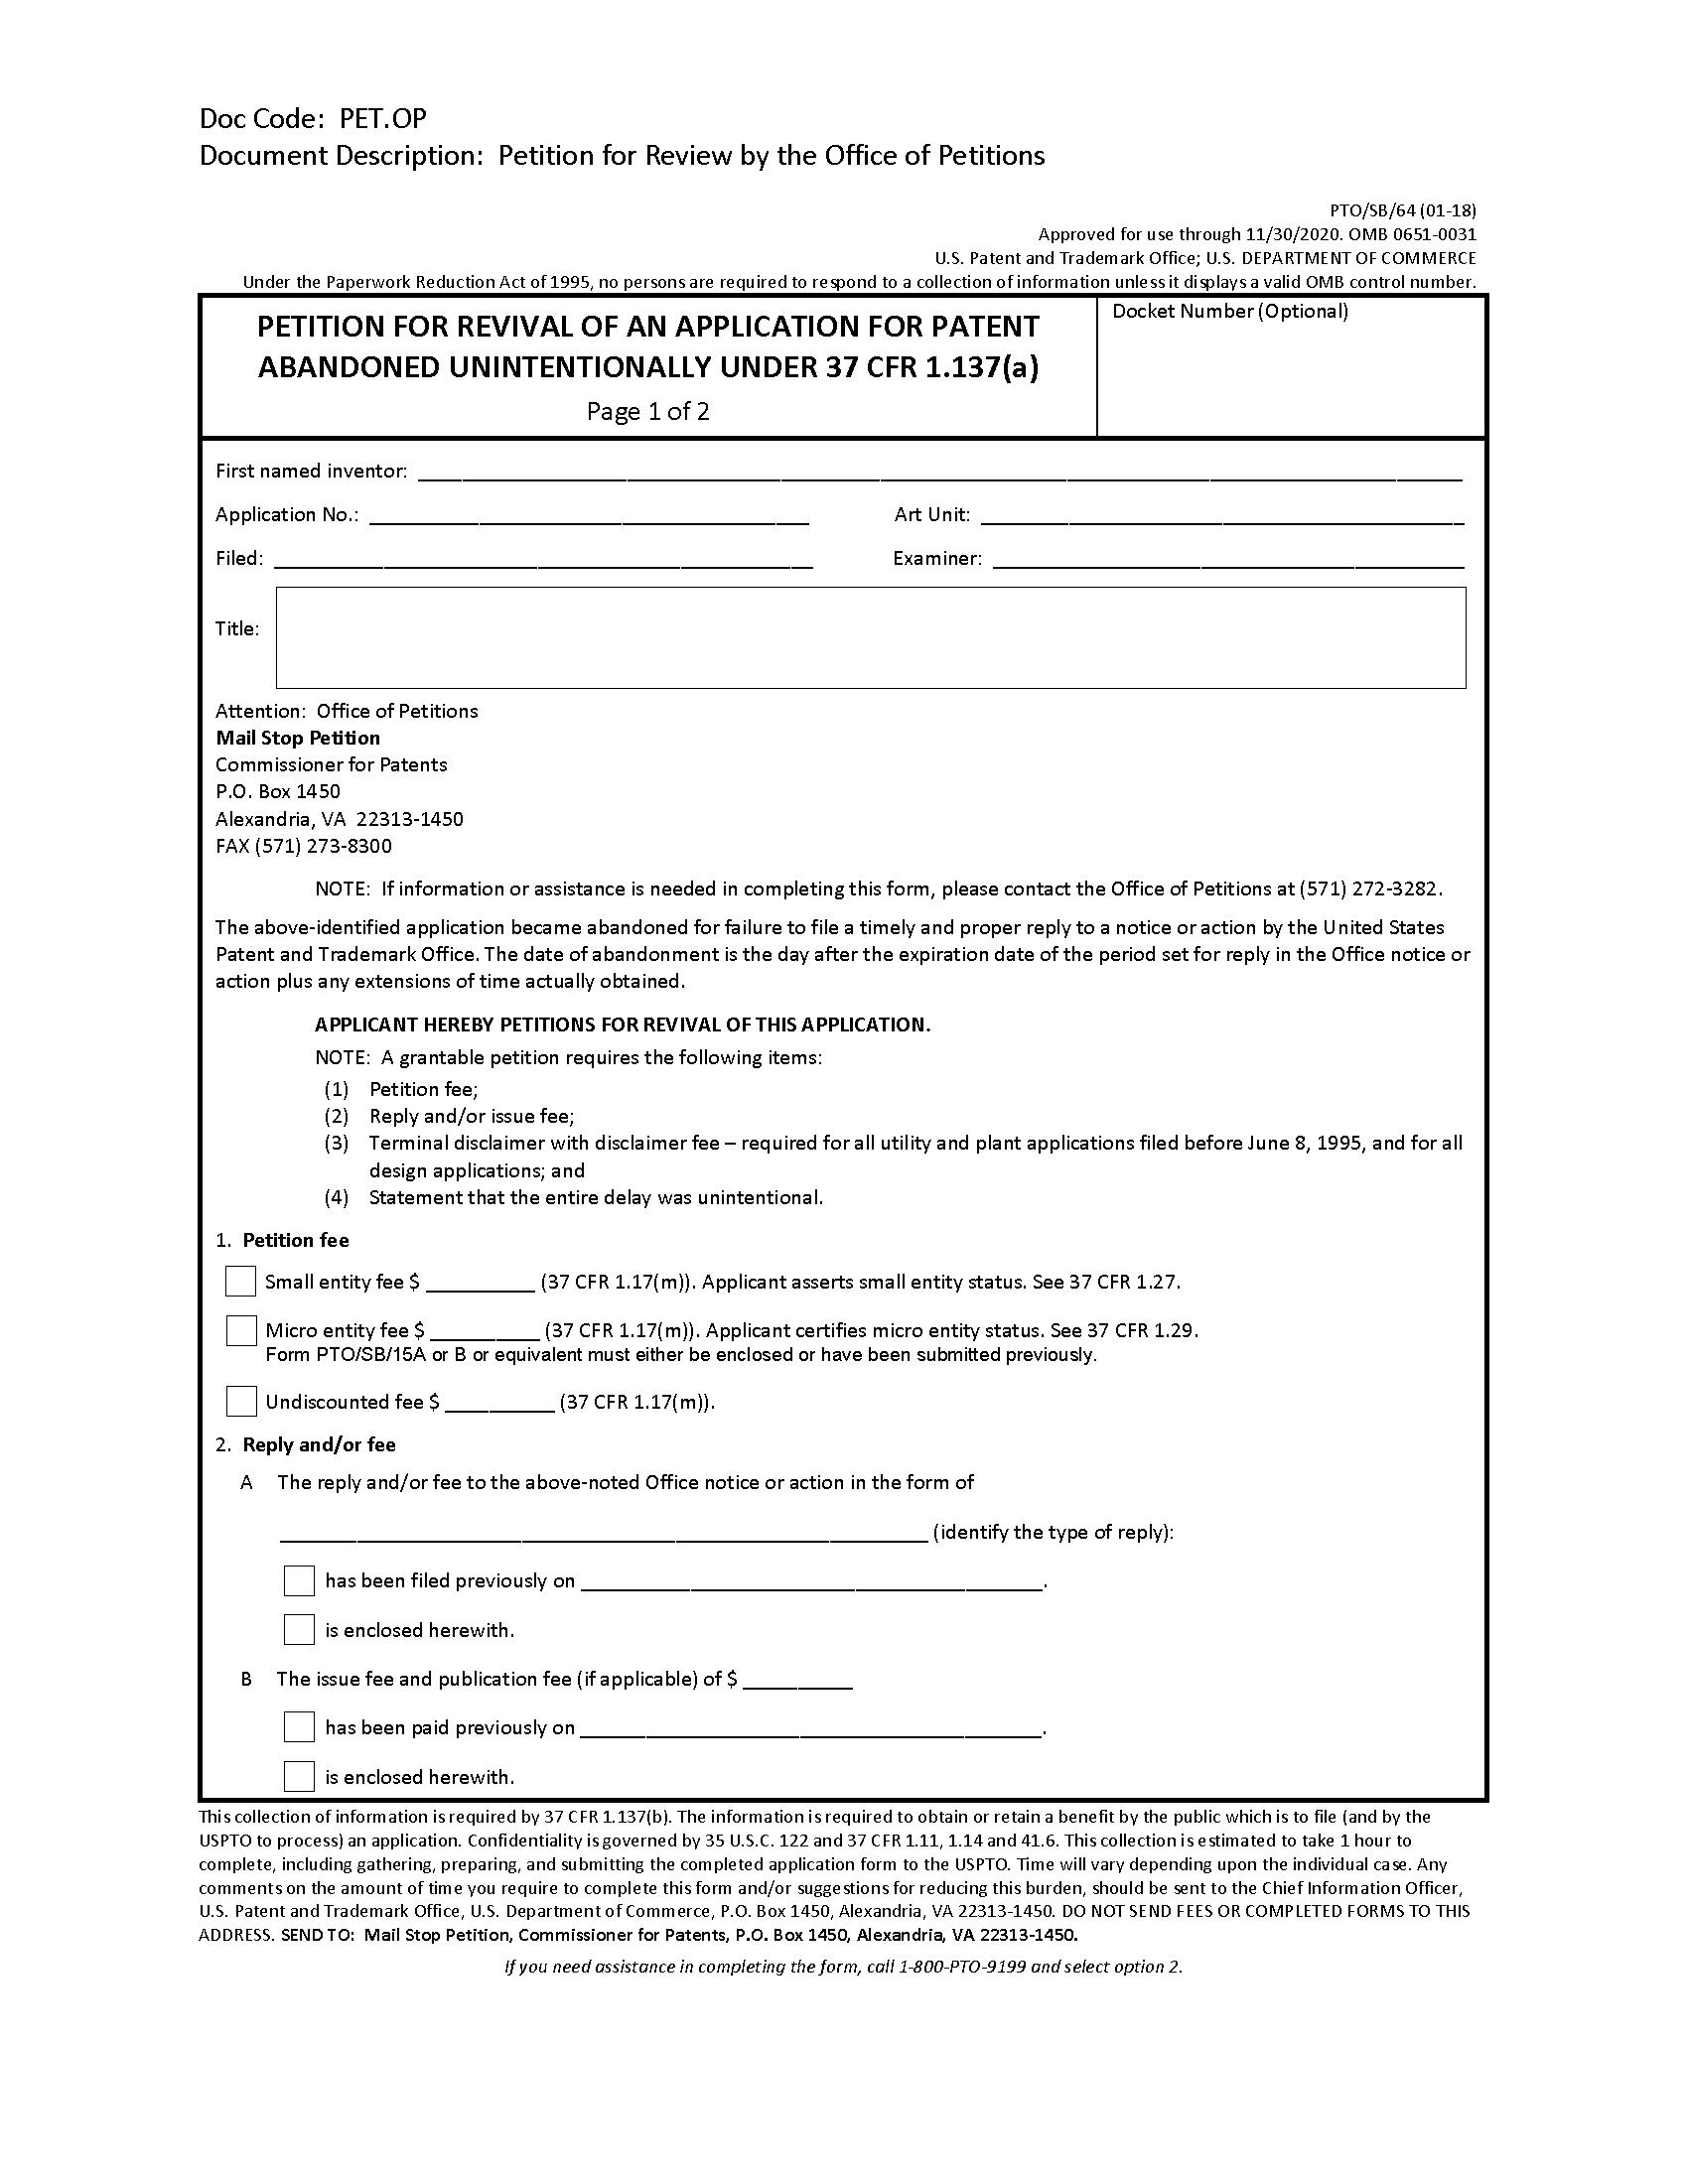 711-Abandonment of Patent Application